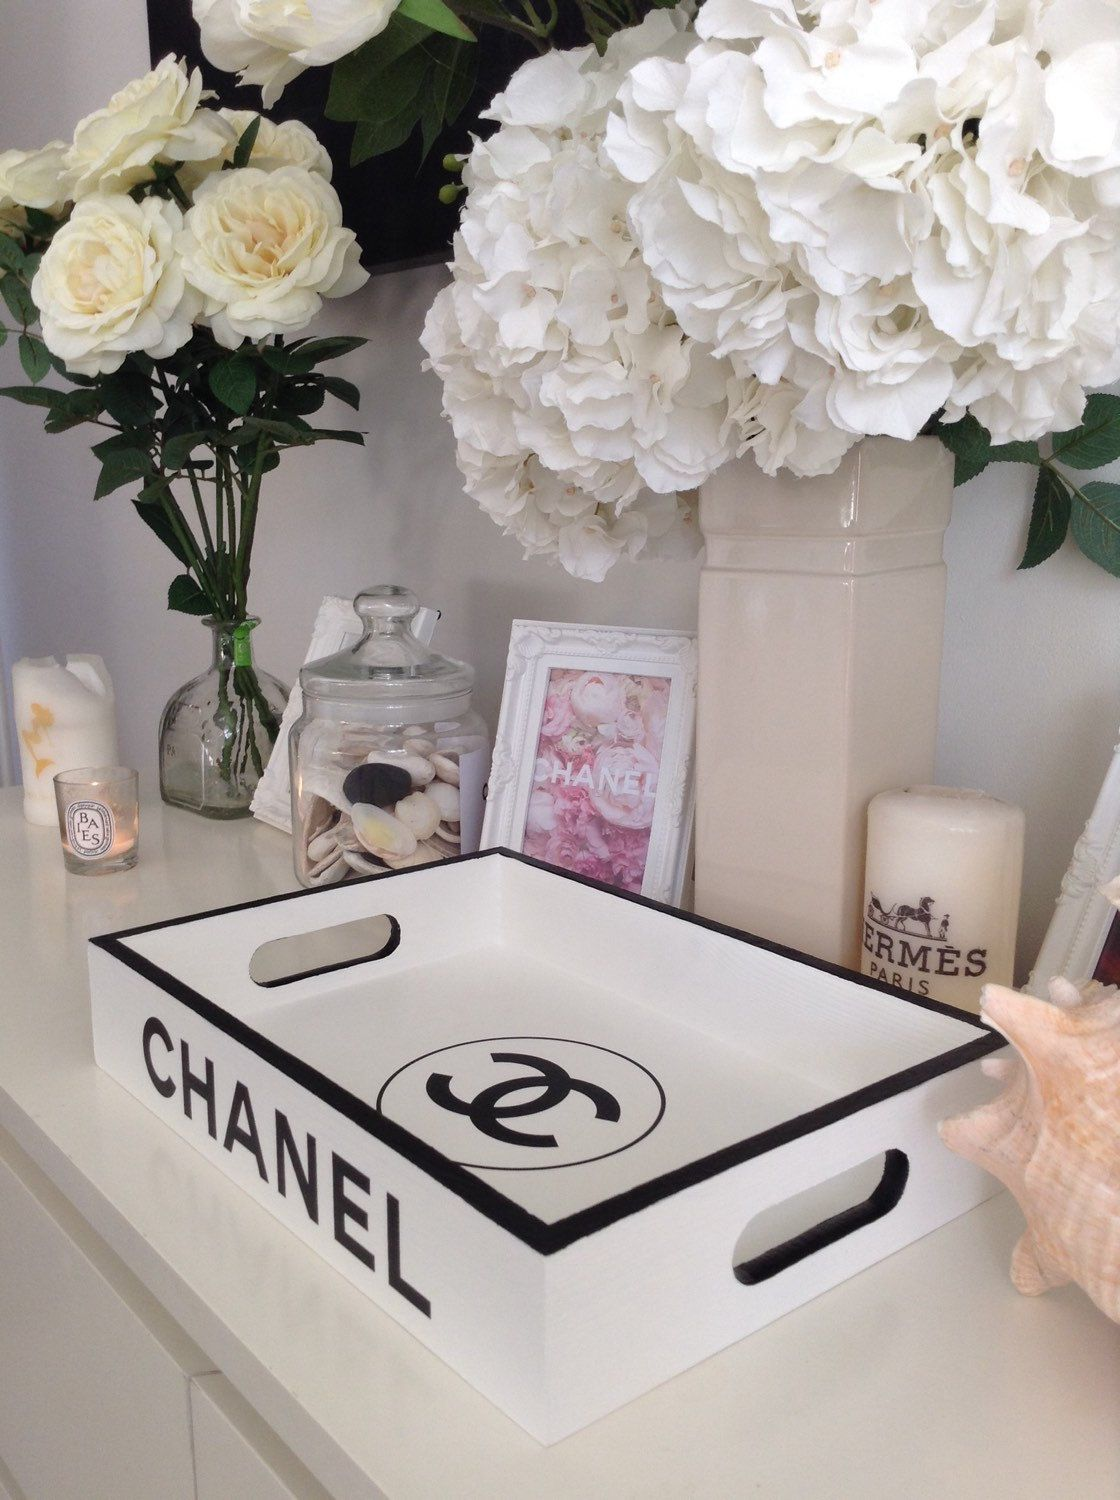 Pin By Nnm On Mrm Chanel Bedroom Chanel Decor Chanel Room